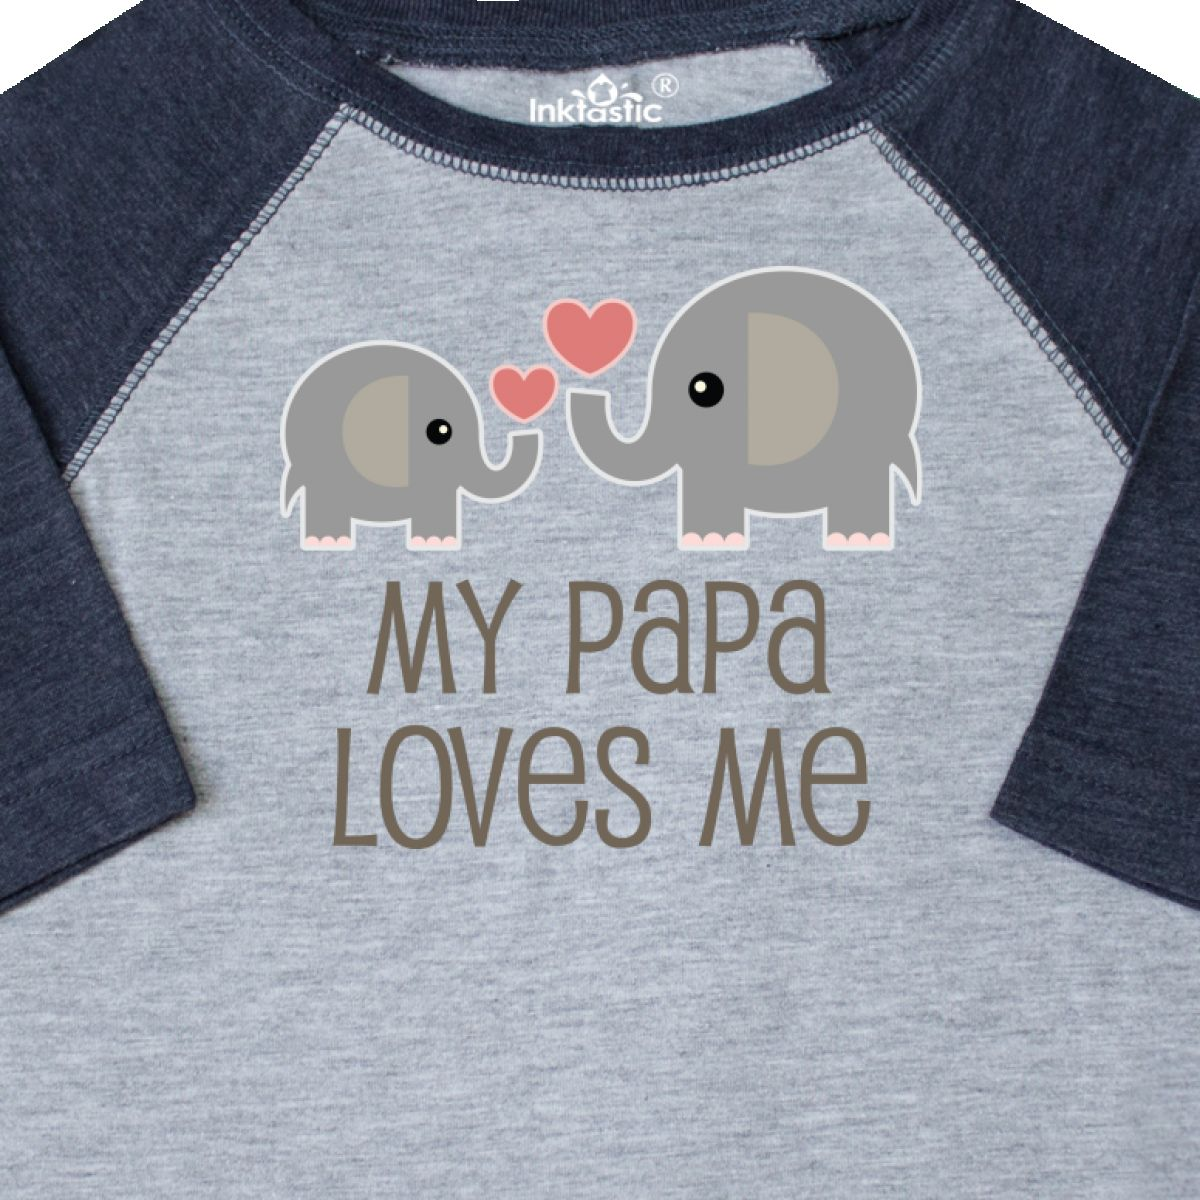 Inktastic-My-Papa-Loves-Me-Grandchild-Toddler-T-Shirt-Gift-From-Grandpa-Elephant thumbnail 6